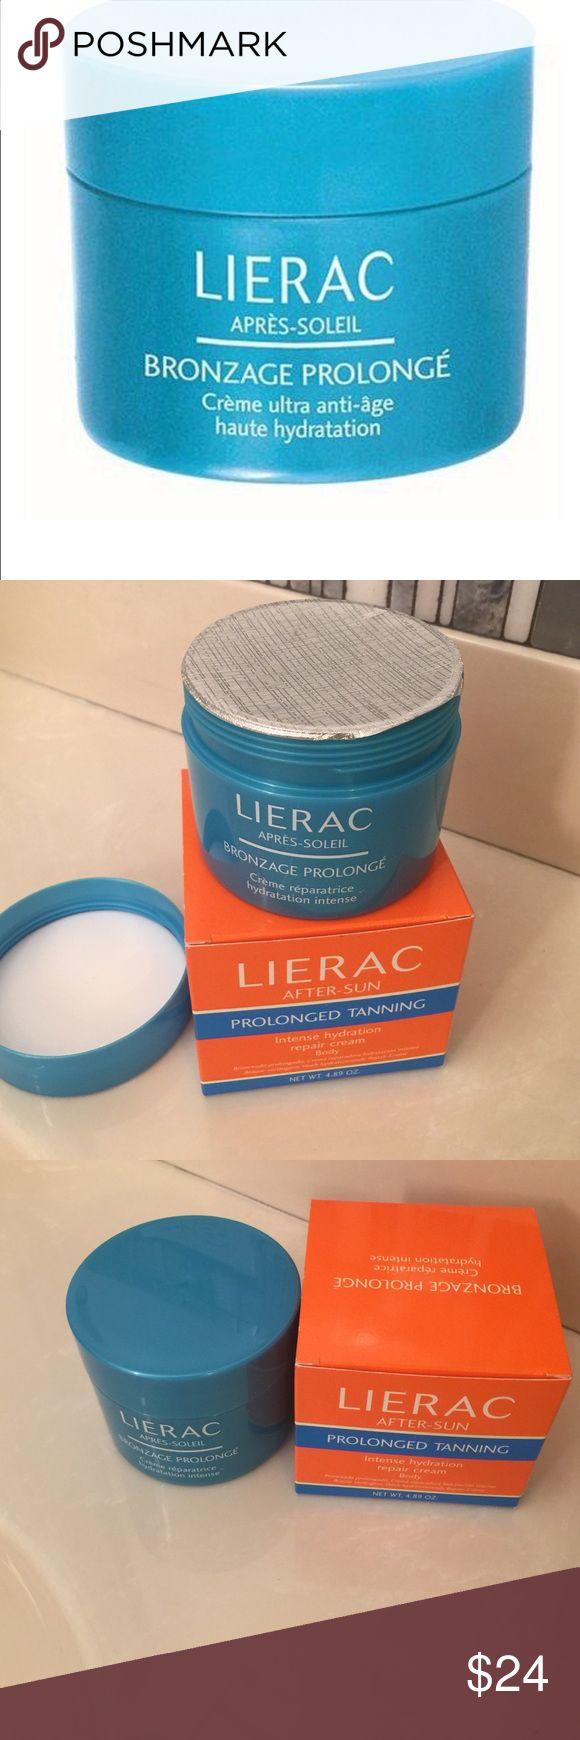 Lierac after-sun prolonged tanning body cream Brand new never opened intense hydration repair body cream lierac Makeup